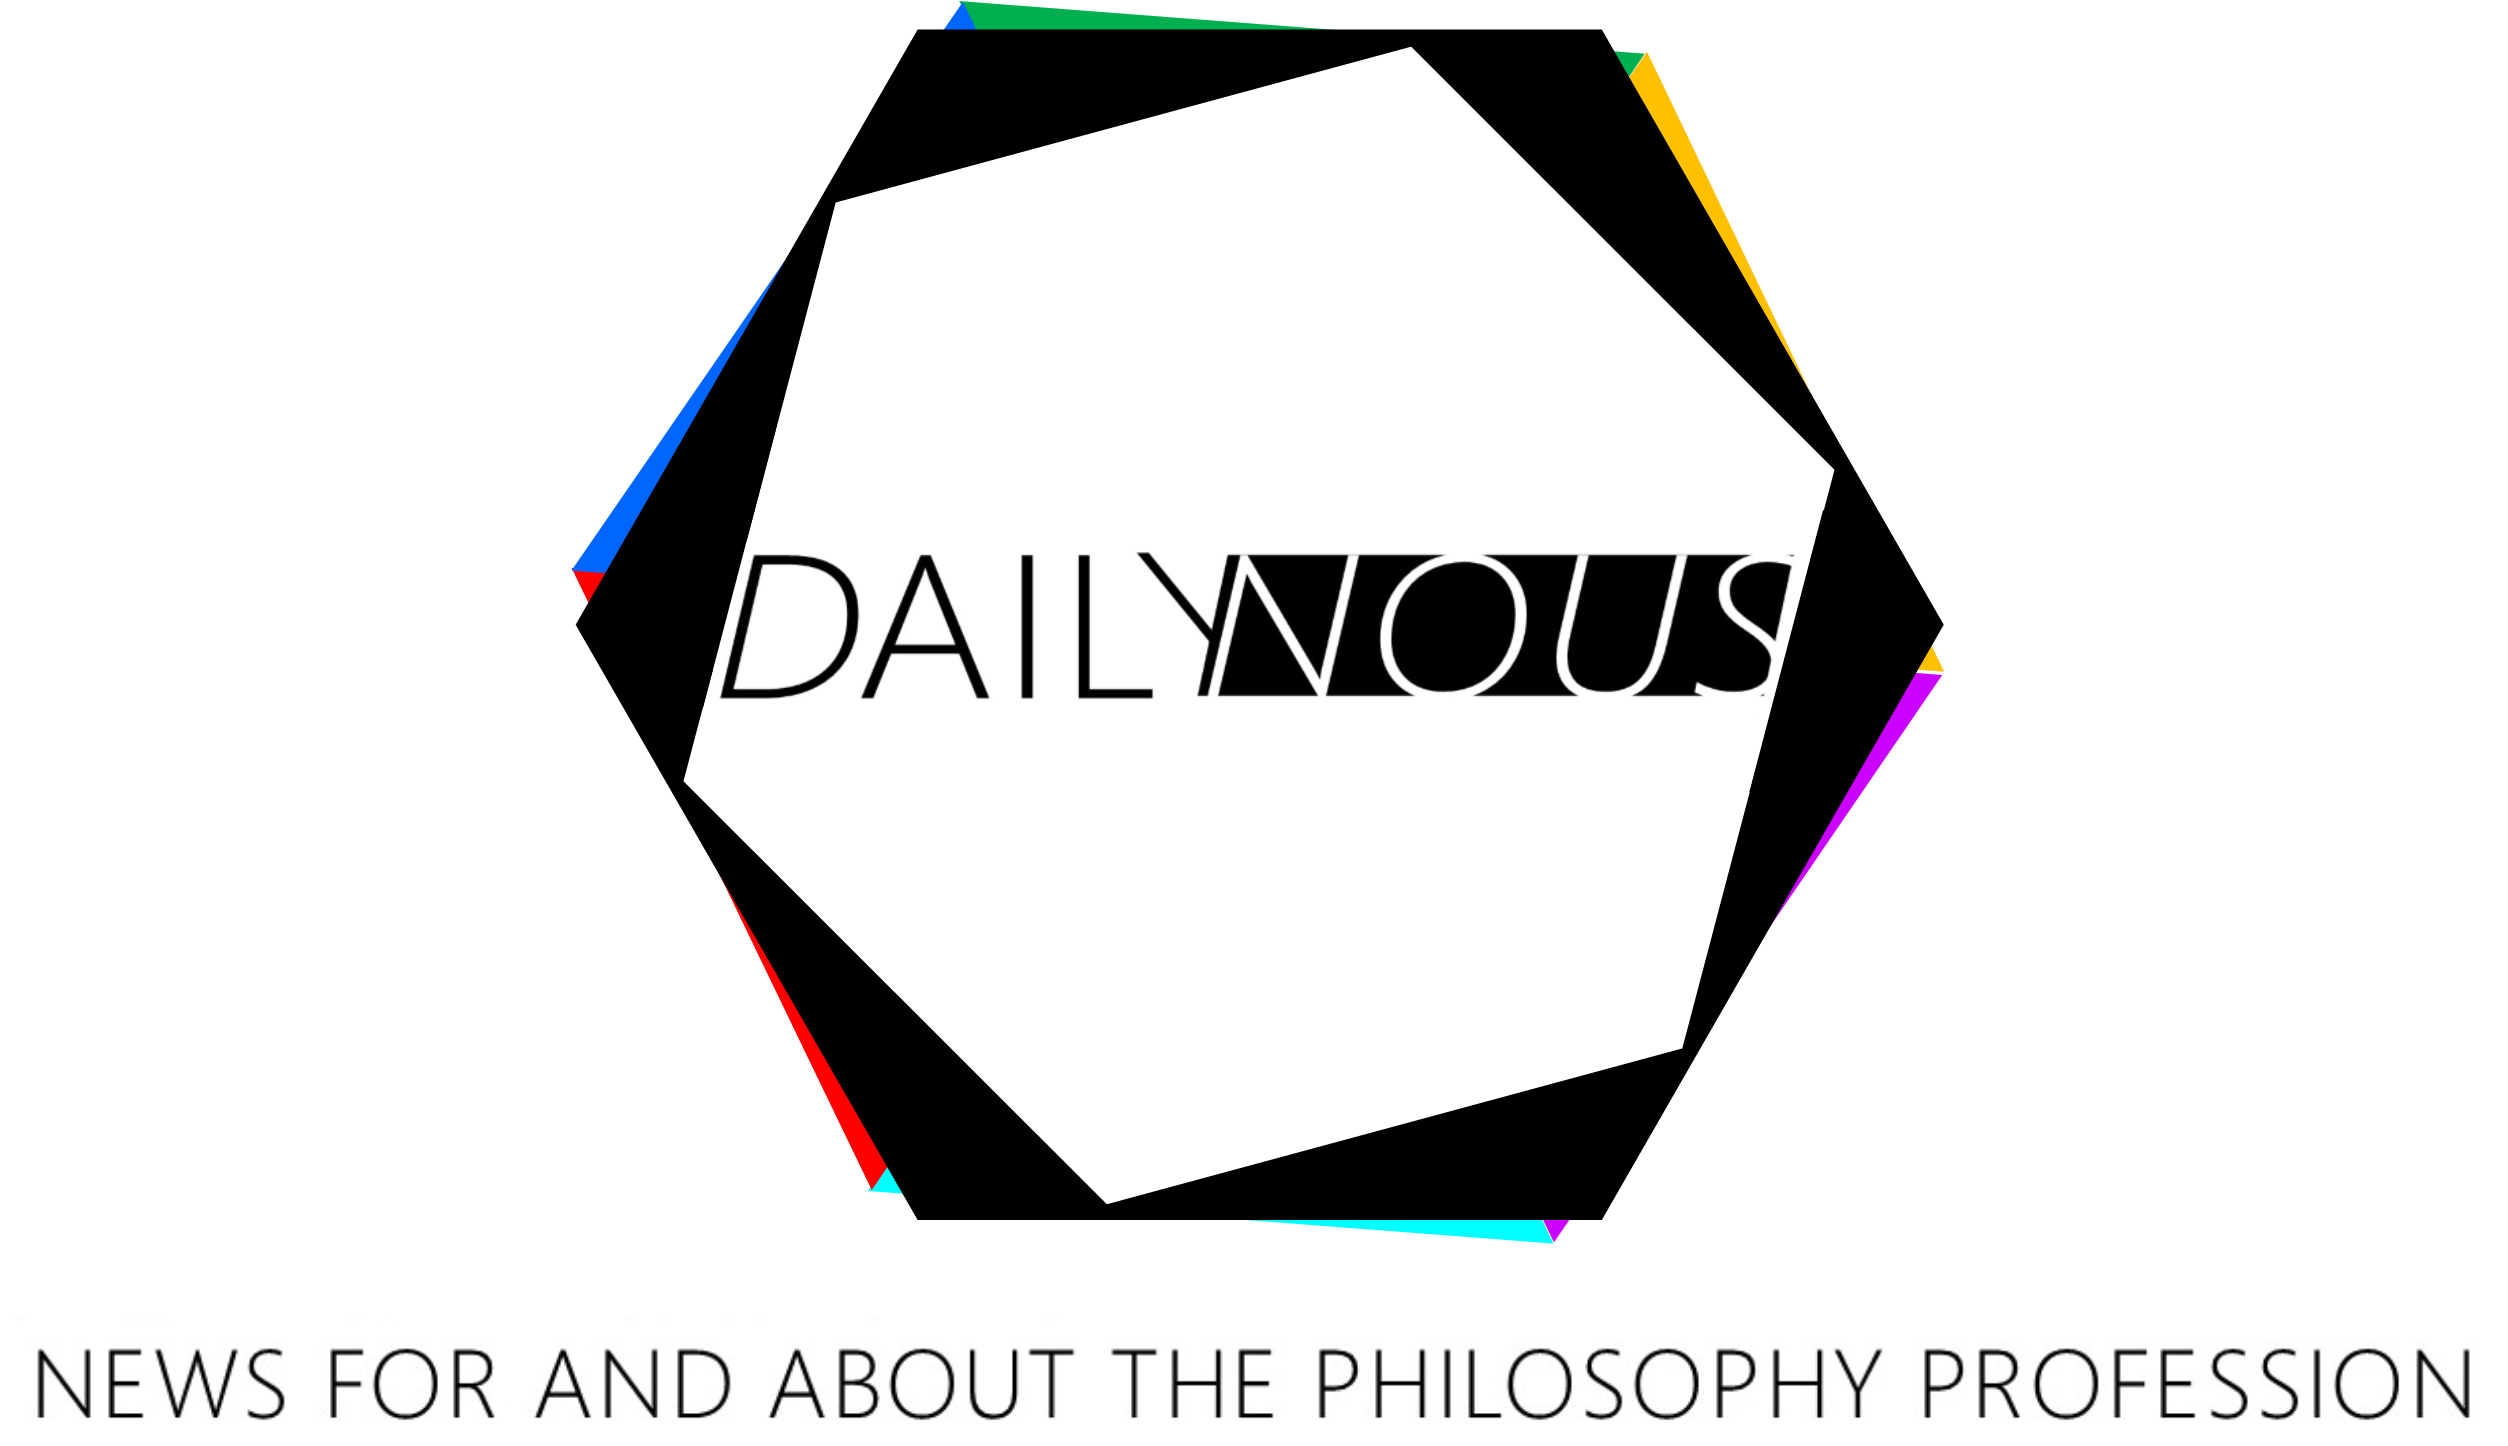 value of philosophy daily nous daily nous